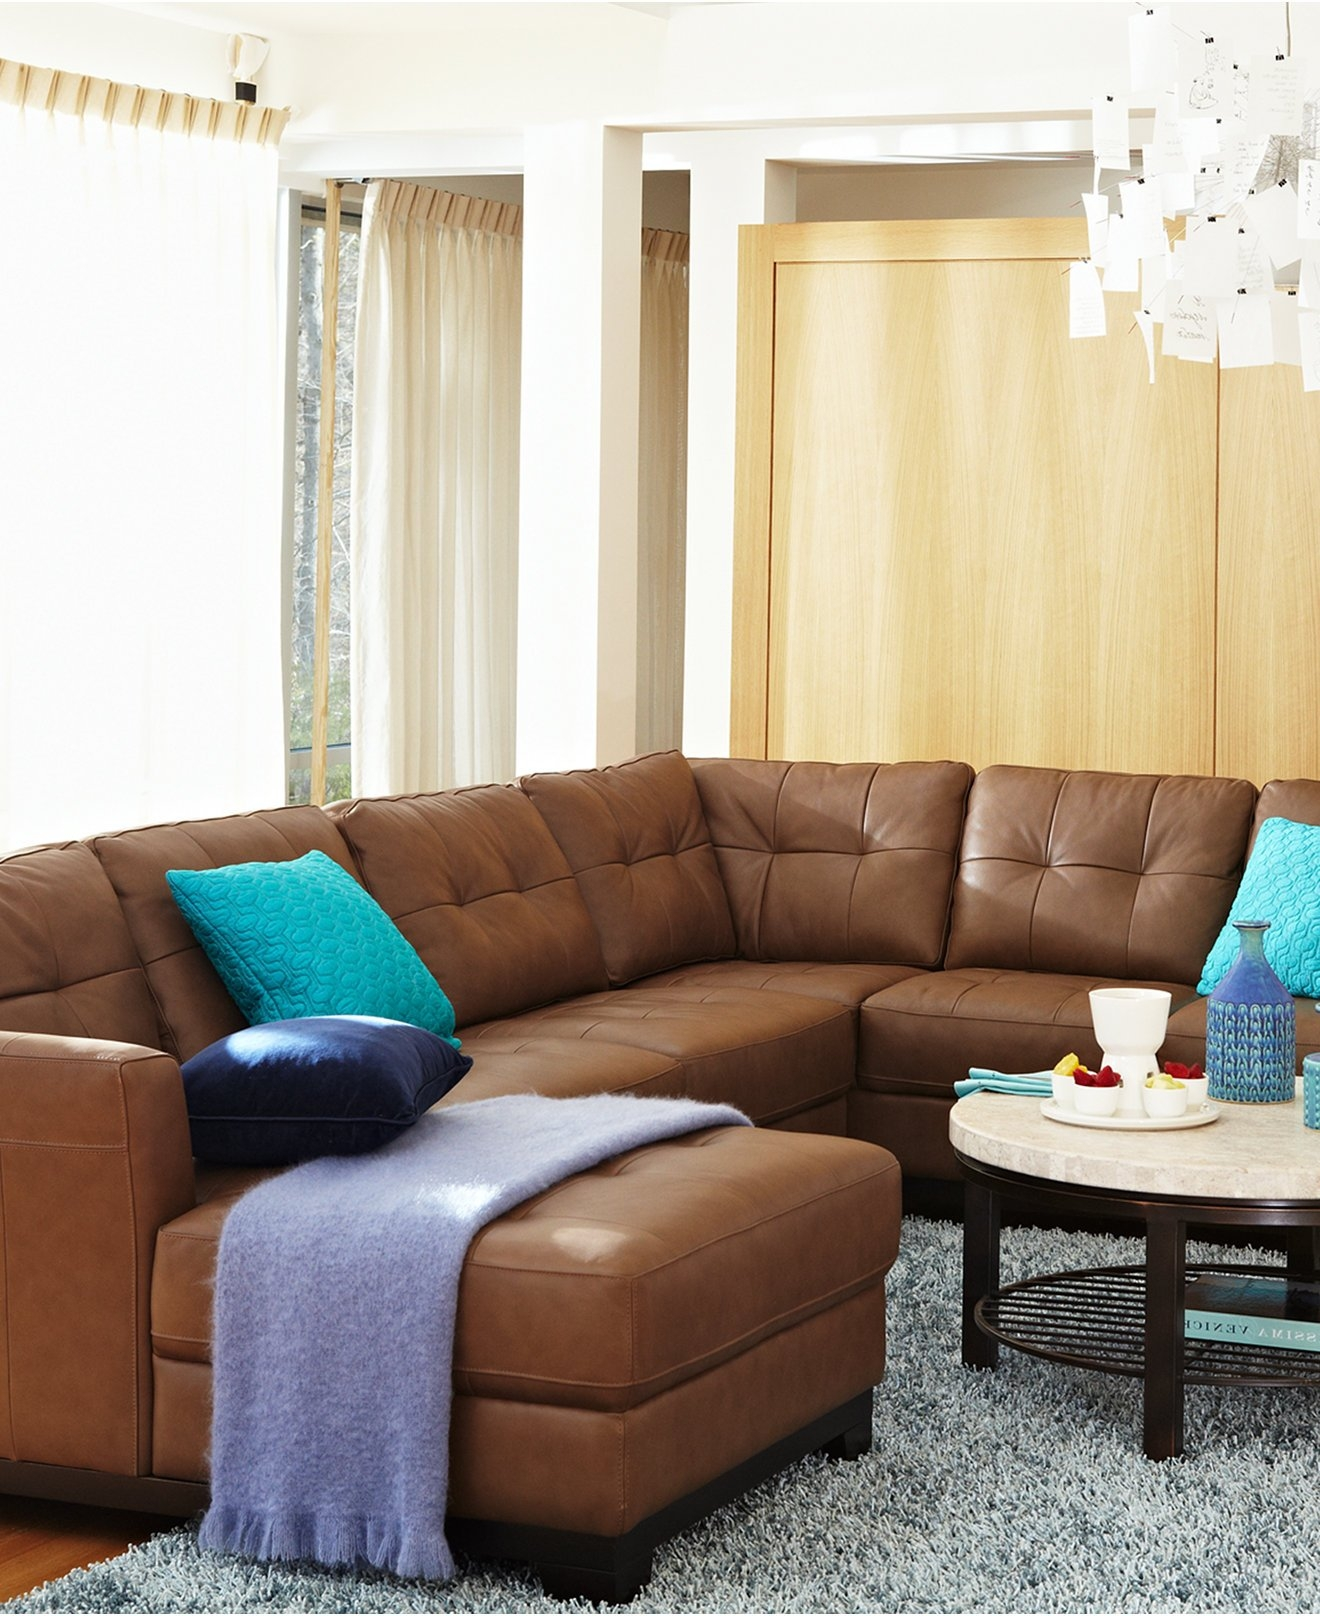 No Rooms Colorful Furniture: Colorful Sectional Sofas